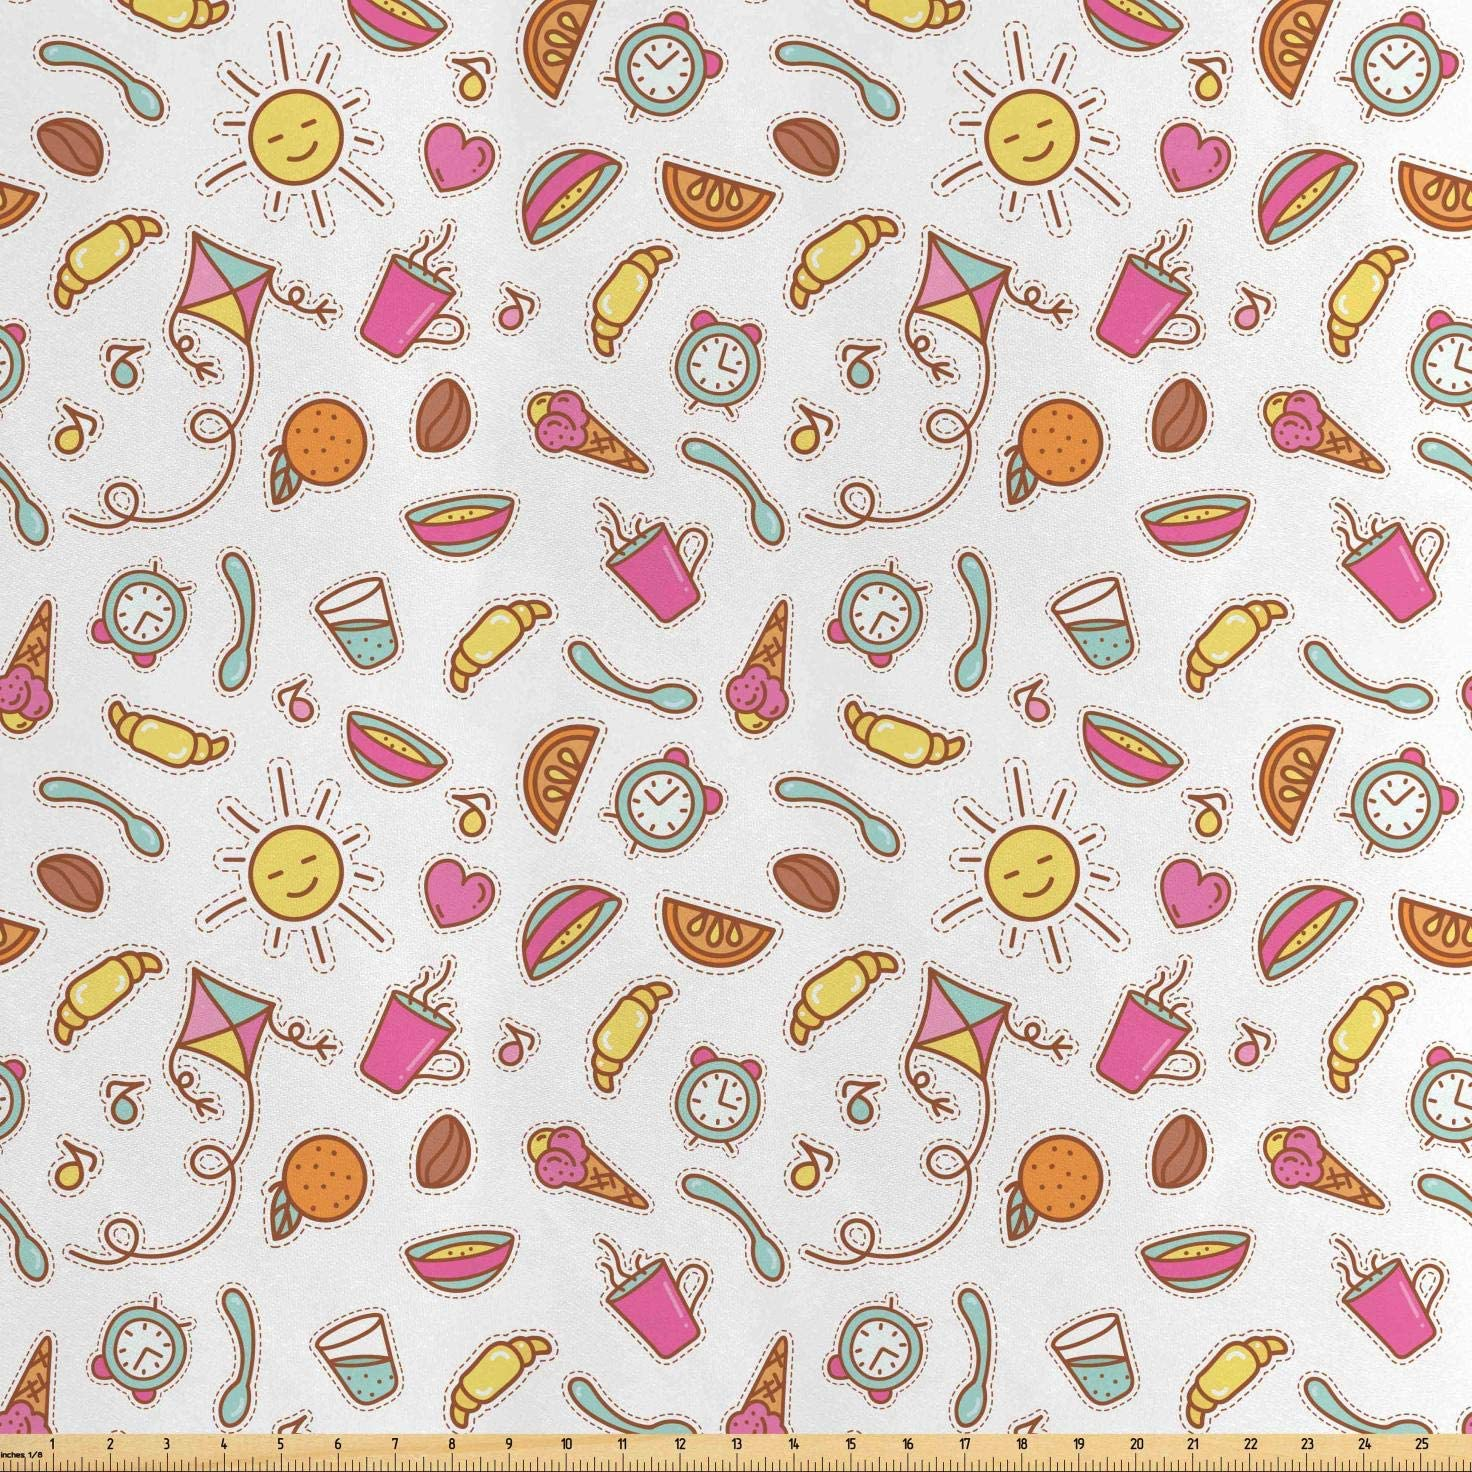 Lunarable Nursery Fabric by The Yard, Doodle Style Nursery Design Ice Cream Burgers Clock Sun Toddler Baby Cartoon, Decorative Satin Fabric for Home Textiles and Crafts, Multicolor